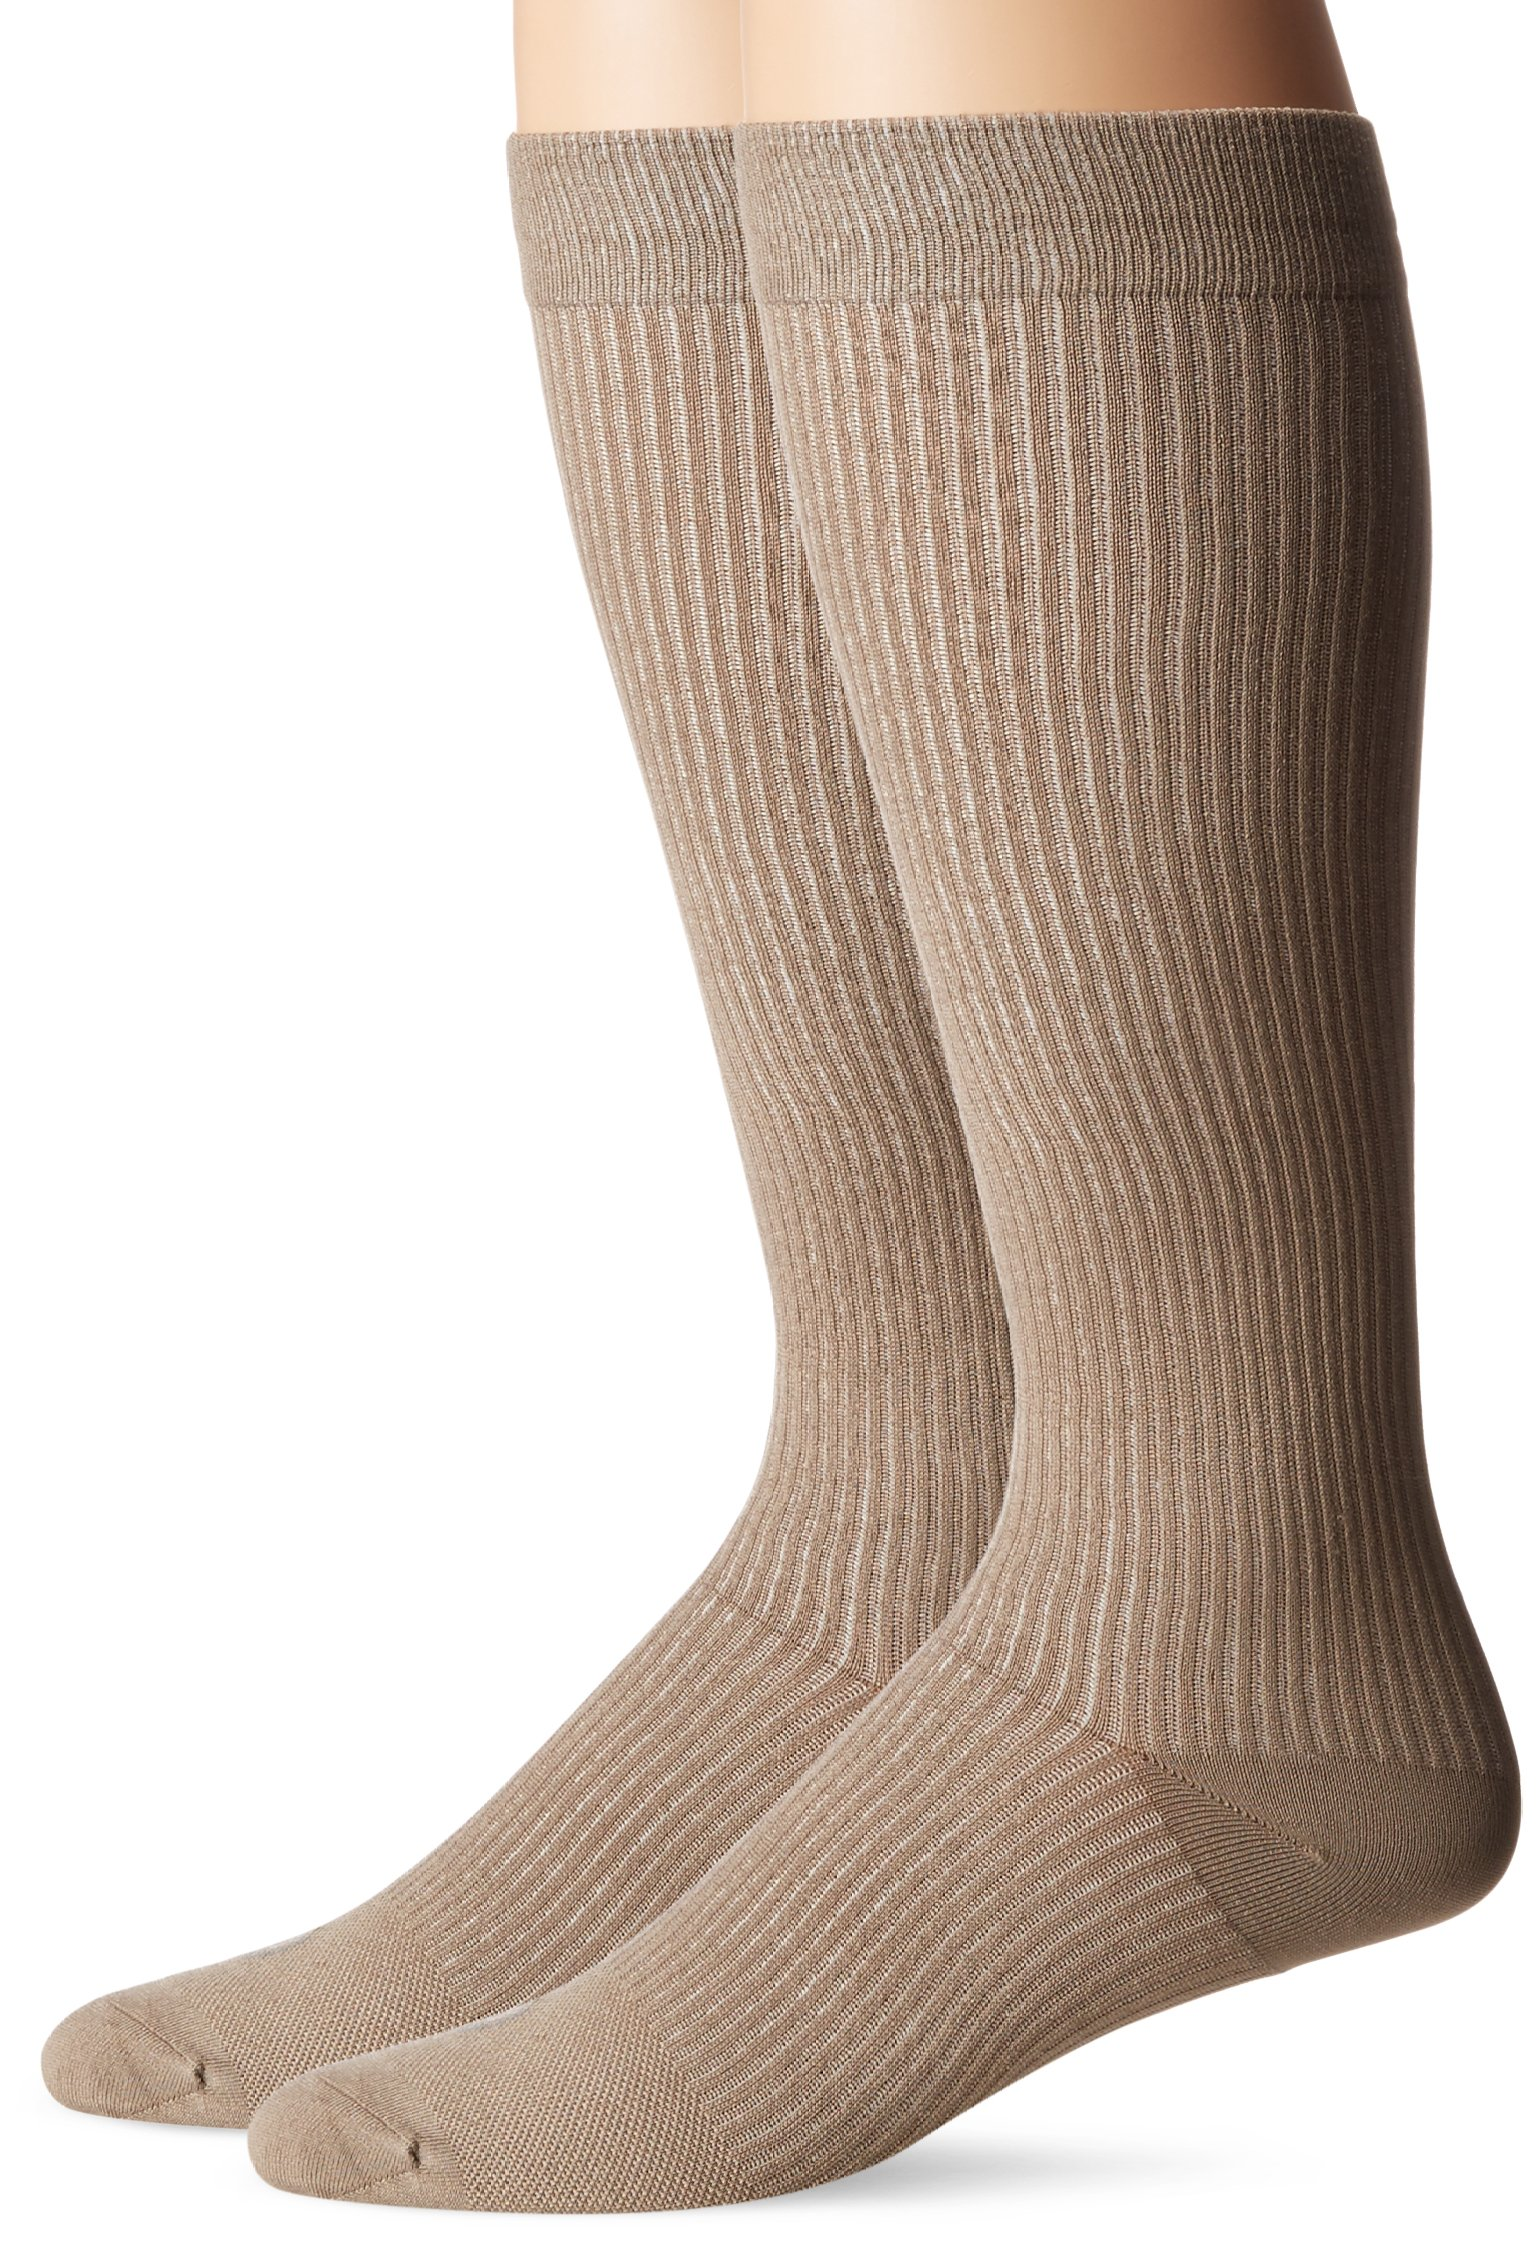 Doctor's Choice Men's Graduated Compression Over-the-Calf 2-Pack, Tan, Sock Size: 10-13/Shoe Size:6-12.5